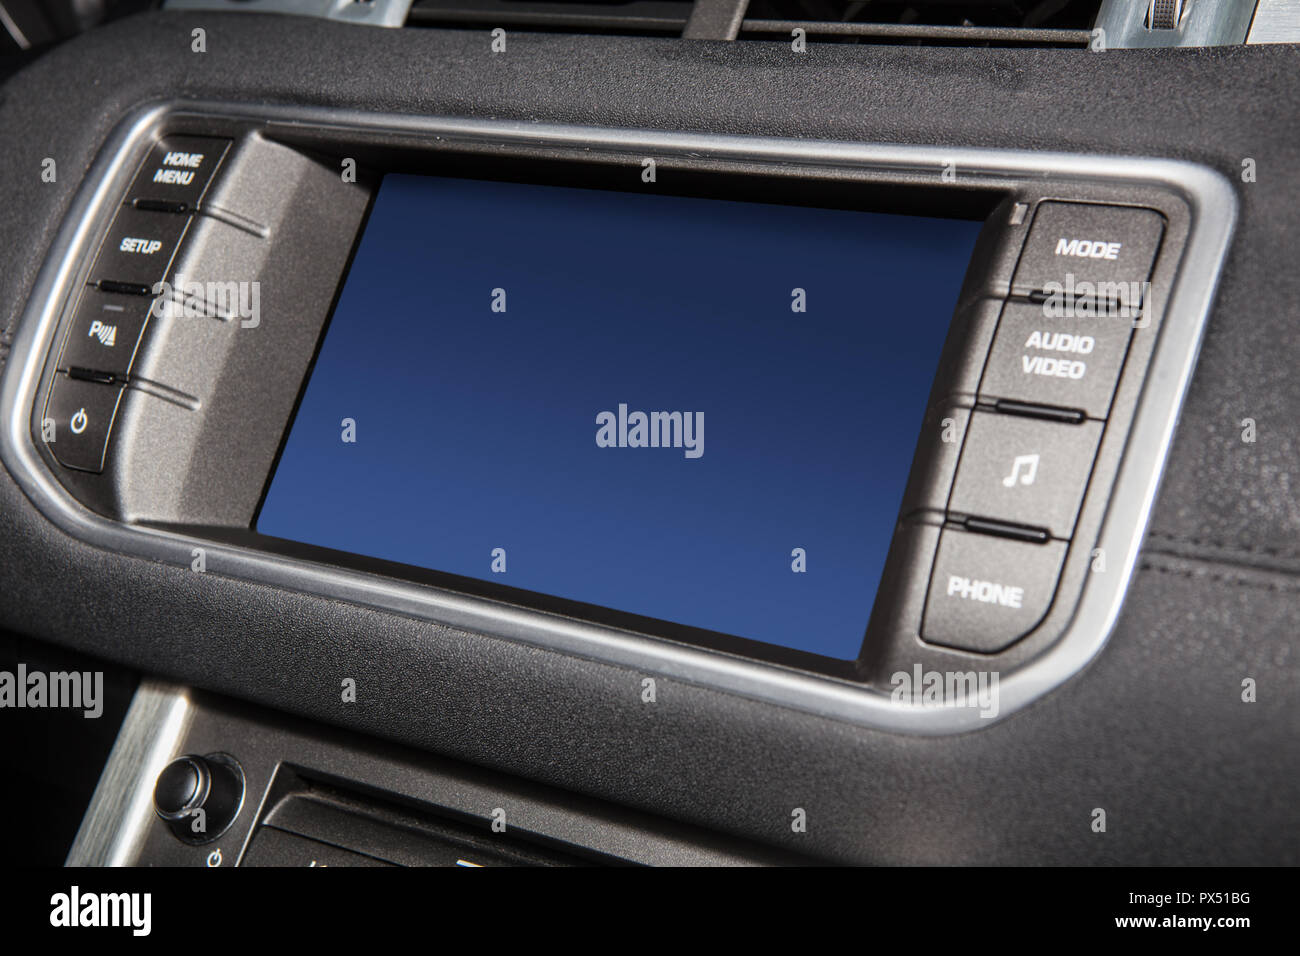 Display on the car's instrument panel. Close-up - Stock Image